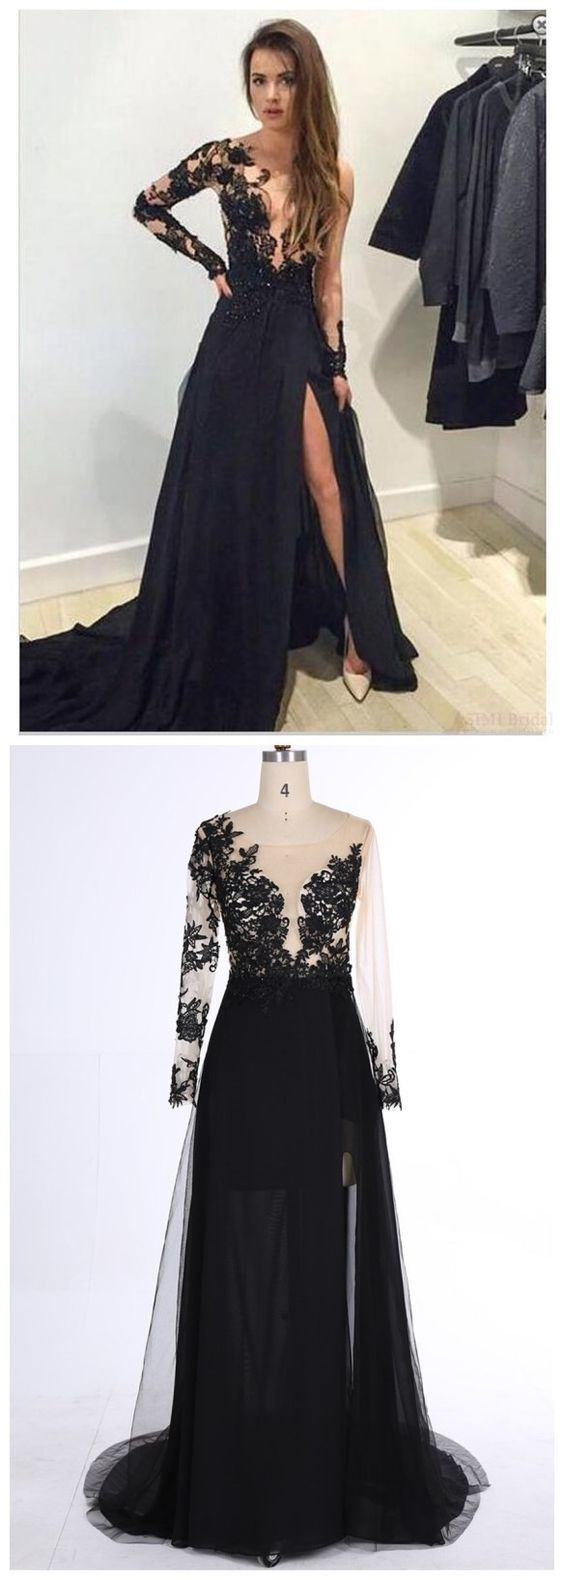 Best 25+ Black formal gown ideas on Pinterest | Homecoming dresses ...